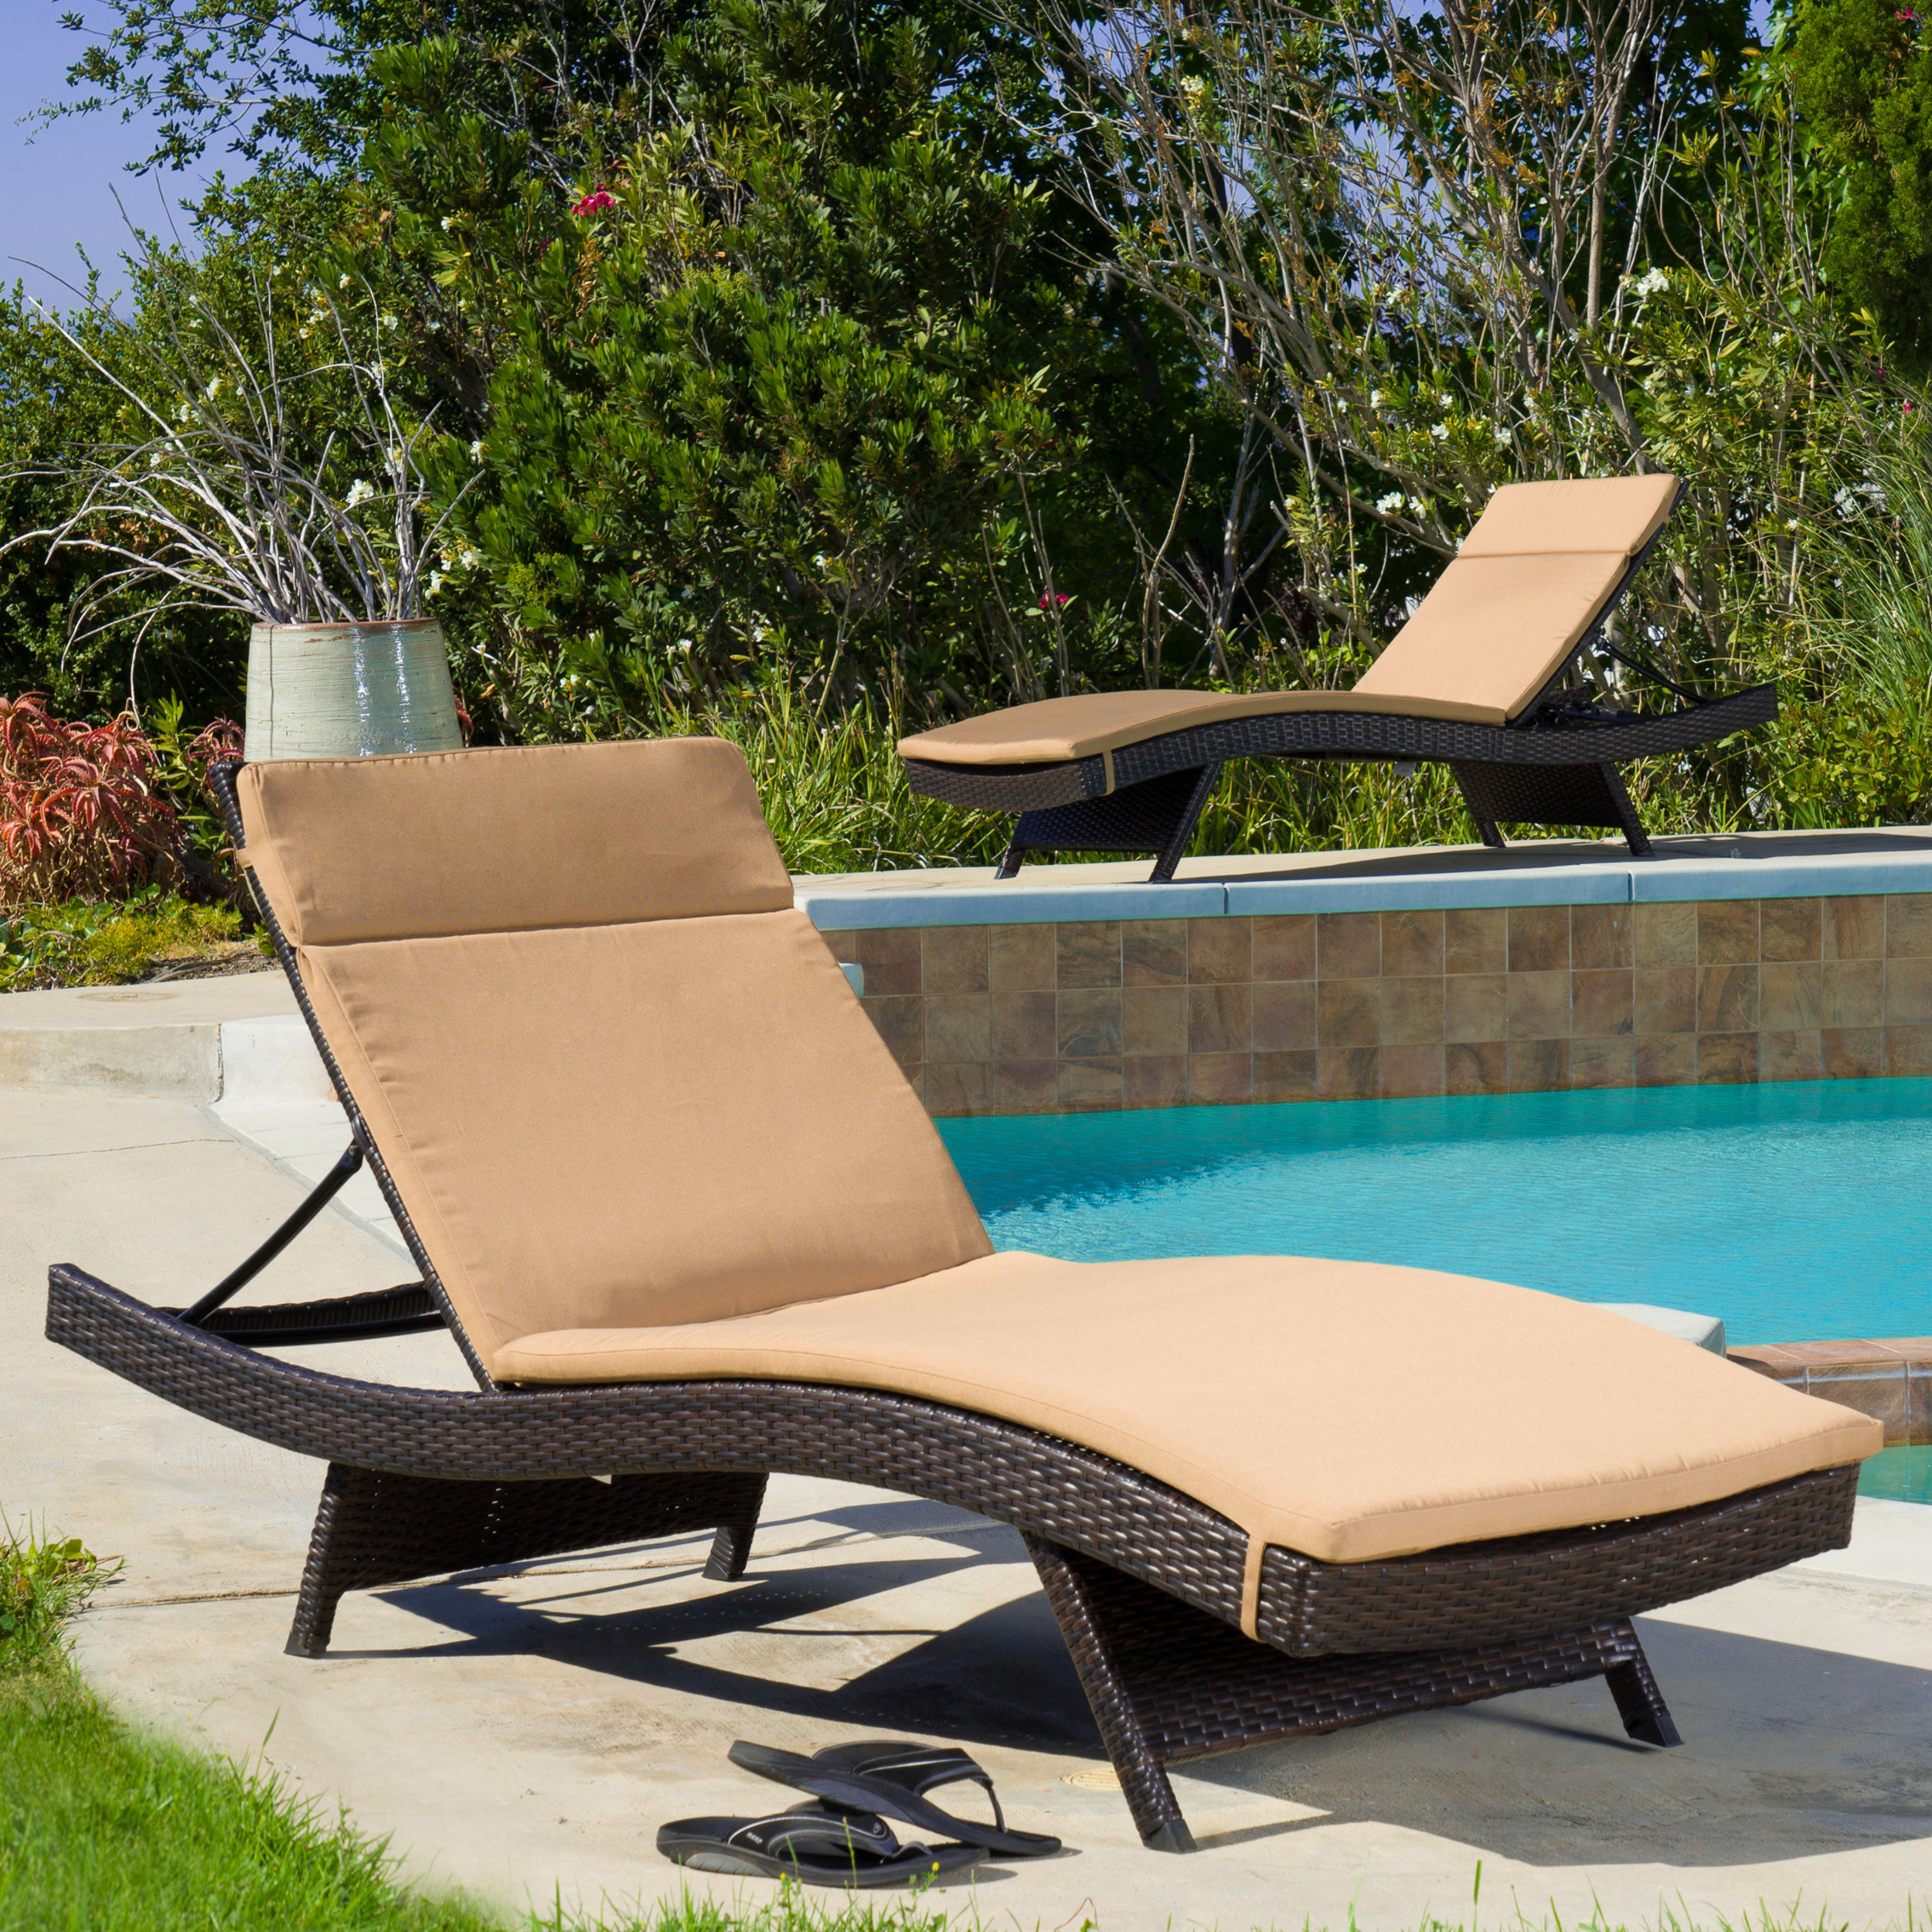 clearance lounge chair pool picture plus chairs patio beautiful chaise gorgeous person neoteric outdoor amazing for furniture photo